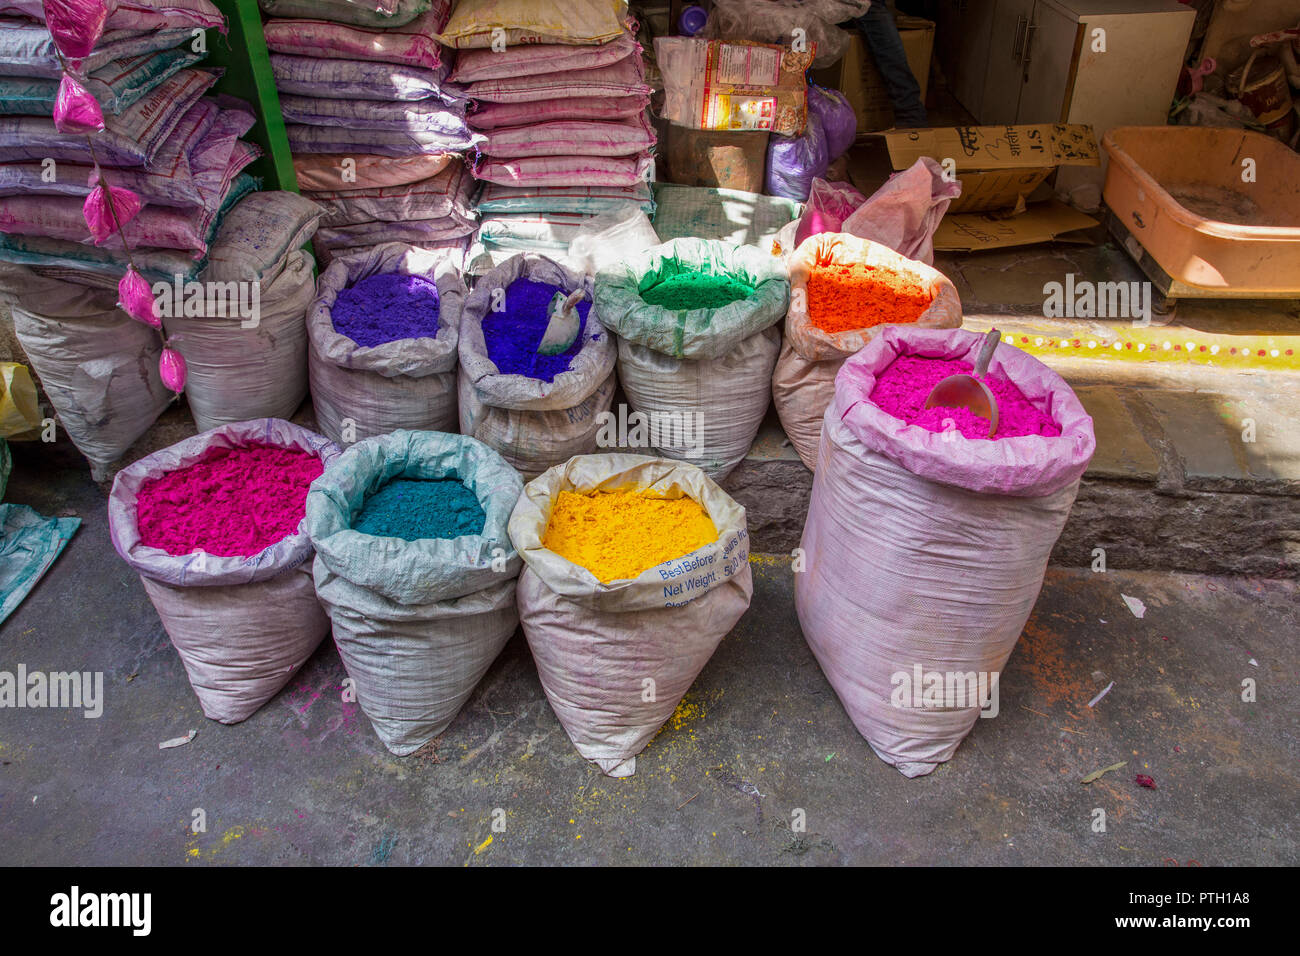 a stall selling paints and dyes at an Indian Market. Photographed in Ahmedabad, Gujarat, India - Stock Image